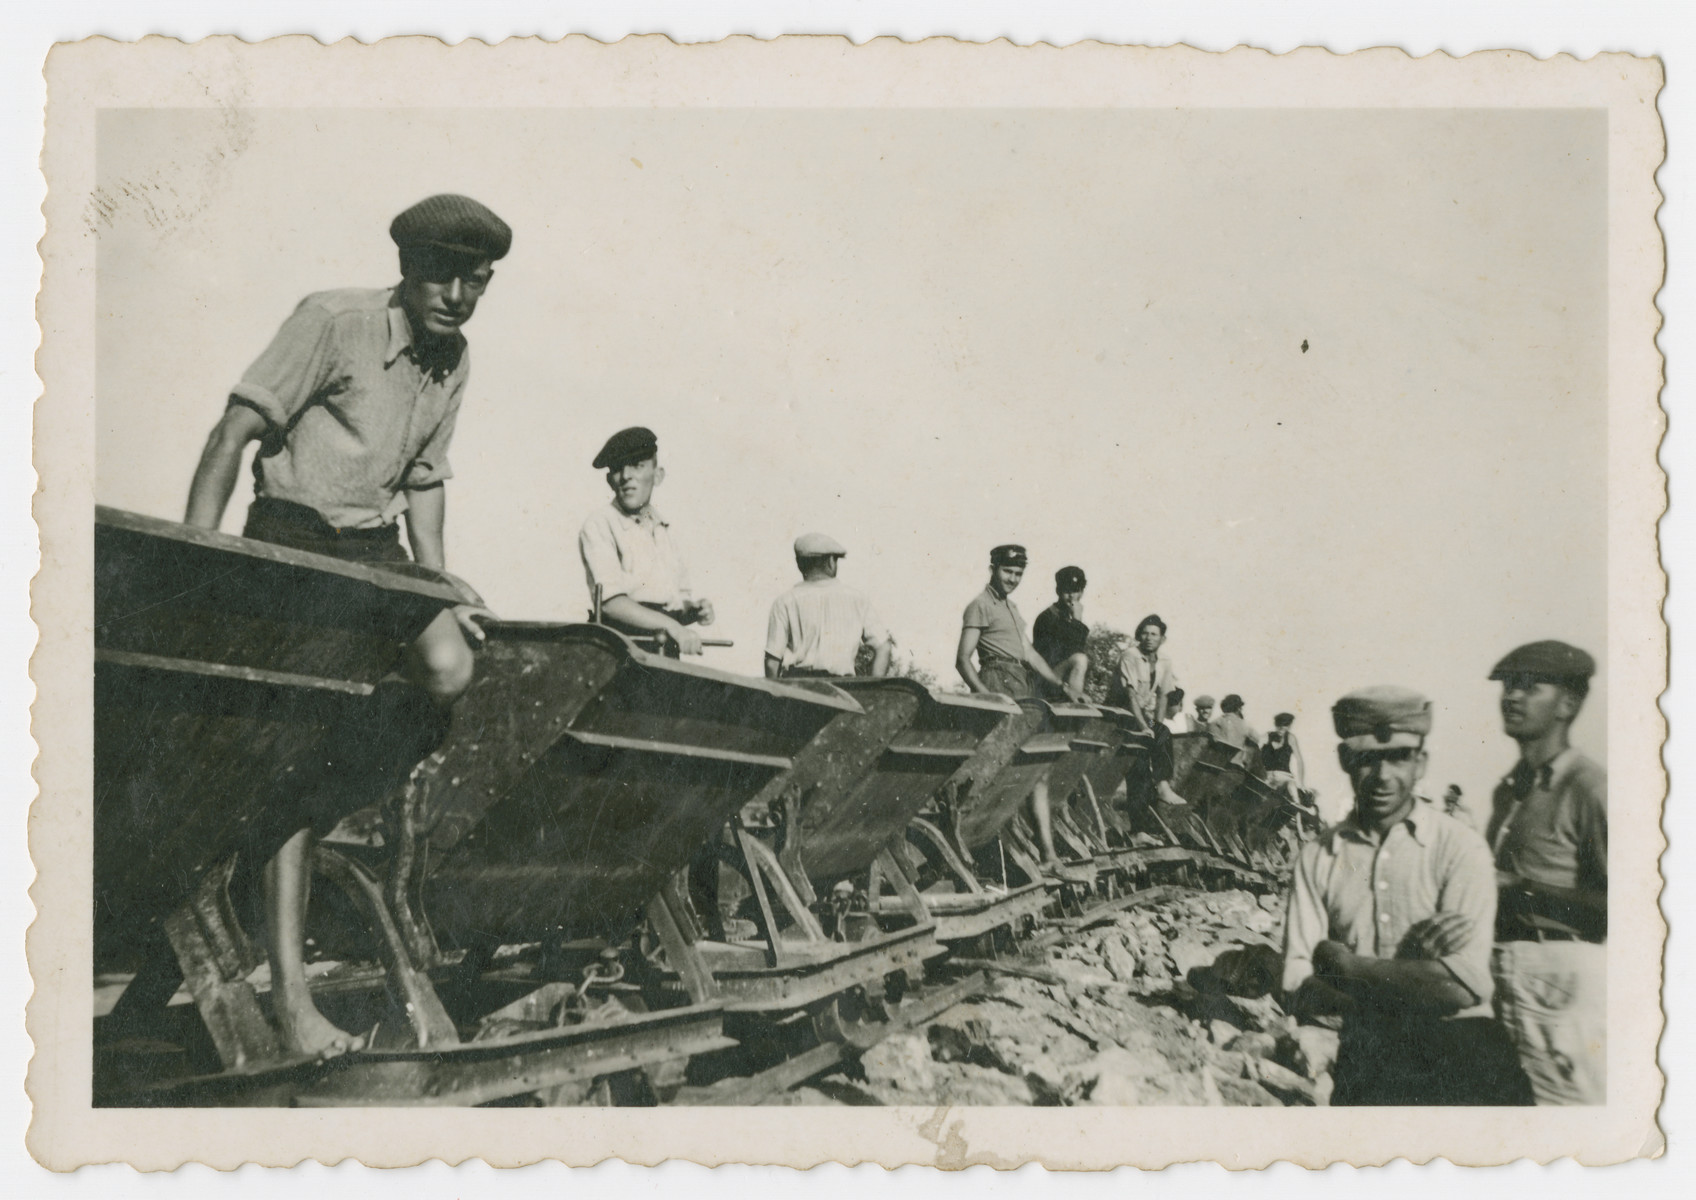 Internees construct train tracks in a Bulgarian labor camp.